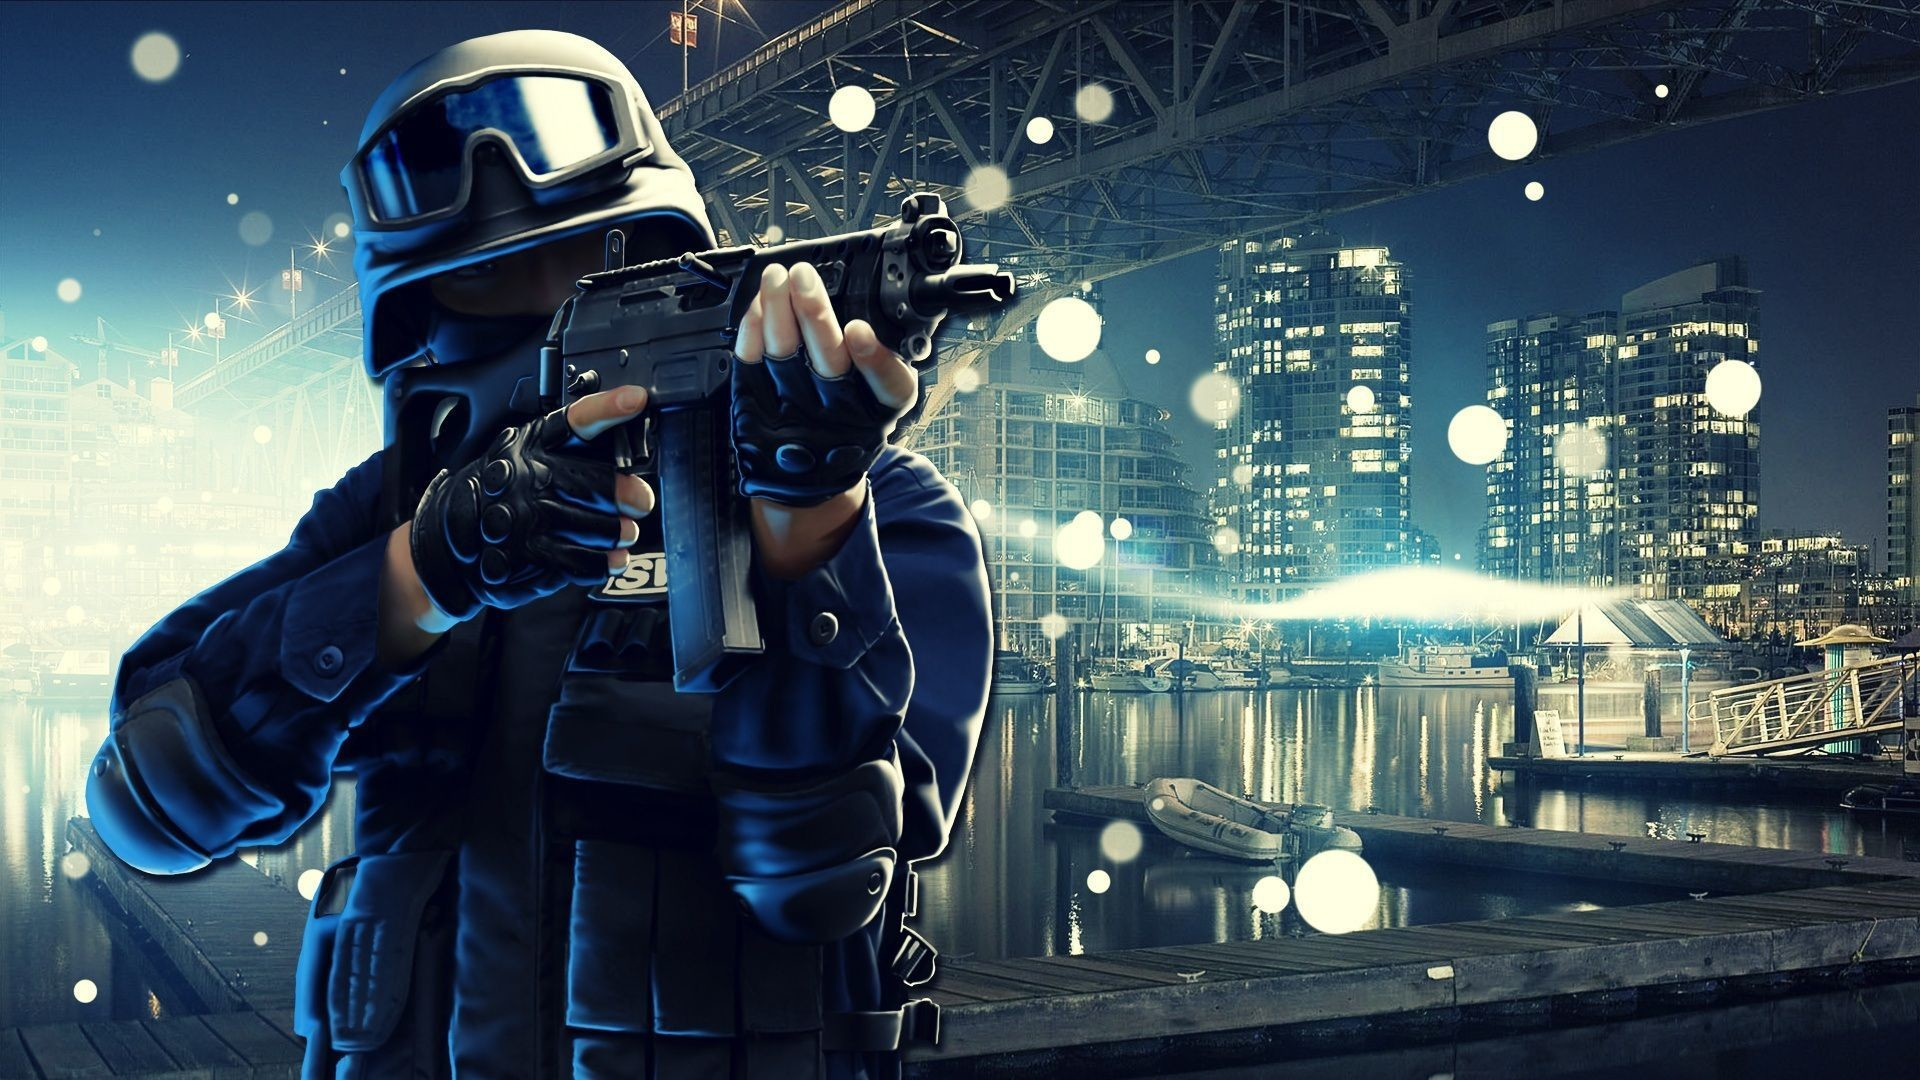 1920x1080 Swat Army Point Blank Online Game Wallpaper HD Image Picture Widescreen For  Desktop